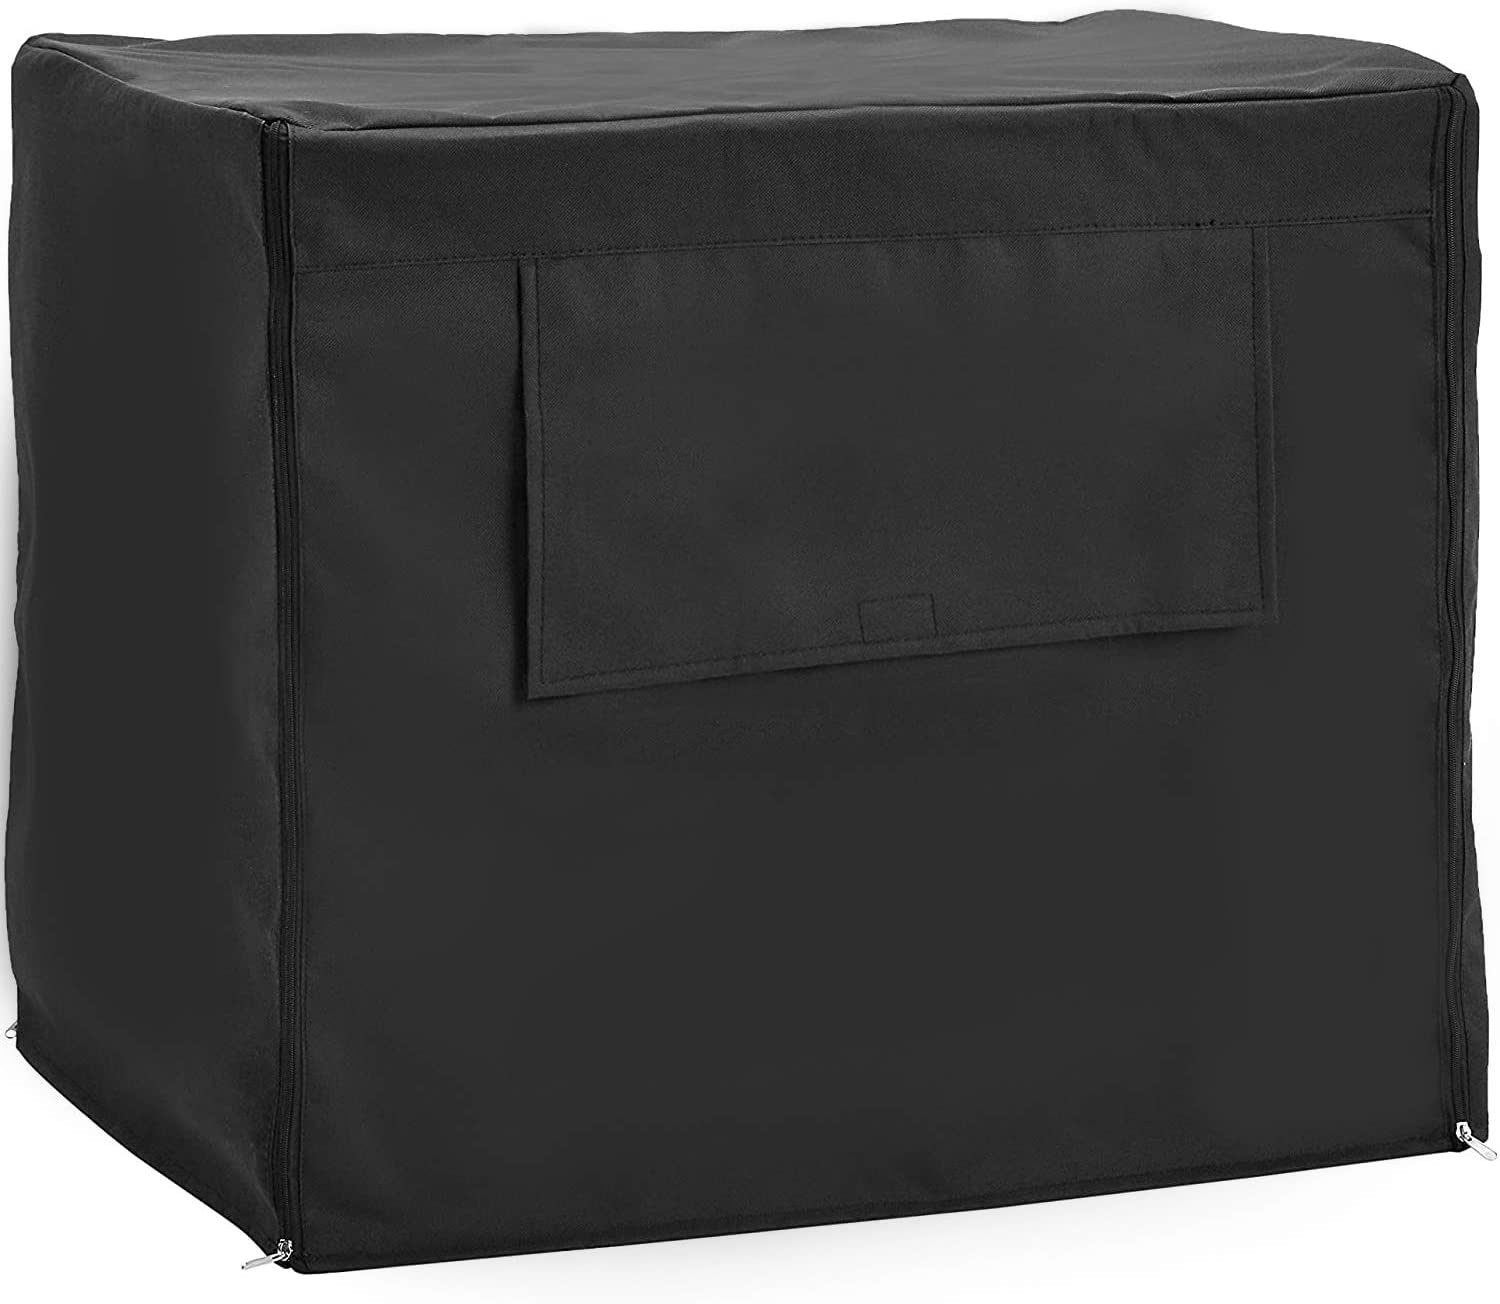 Downtown Pet Supply Universal Fit Dog Crate Cover with Side Windows, XL Pet Polyester Pet Kennel Cage Covering, Removeable Privacy Canvas Carrier with Secure Buckles (42 Inch)